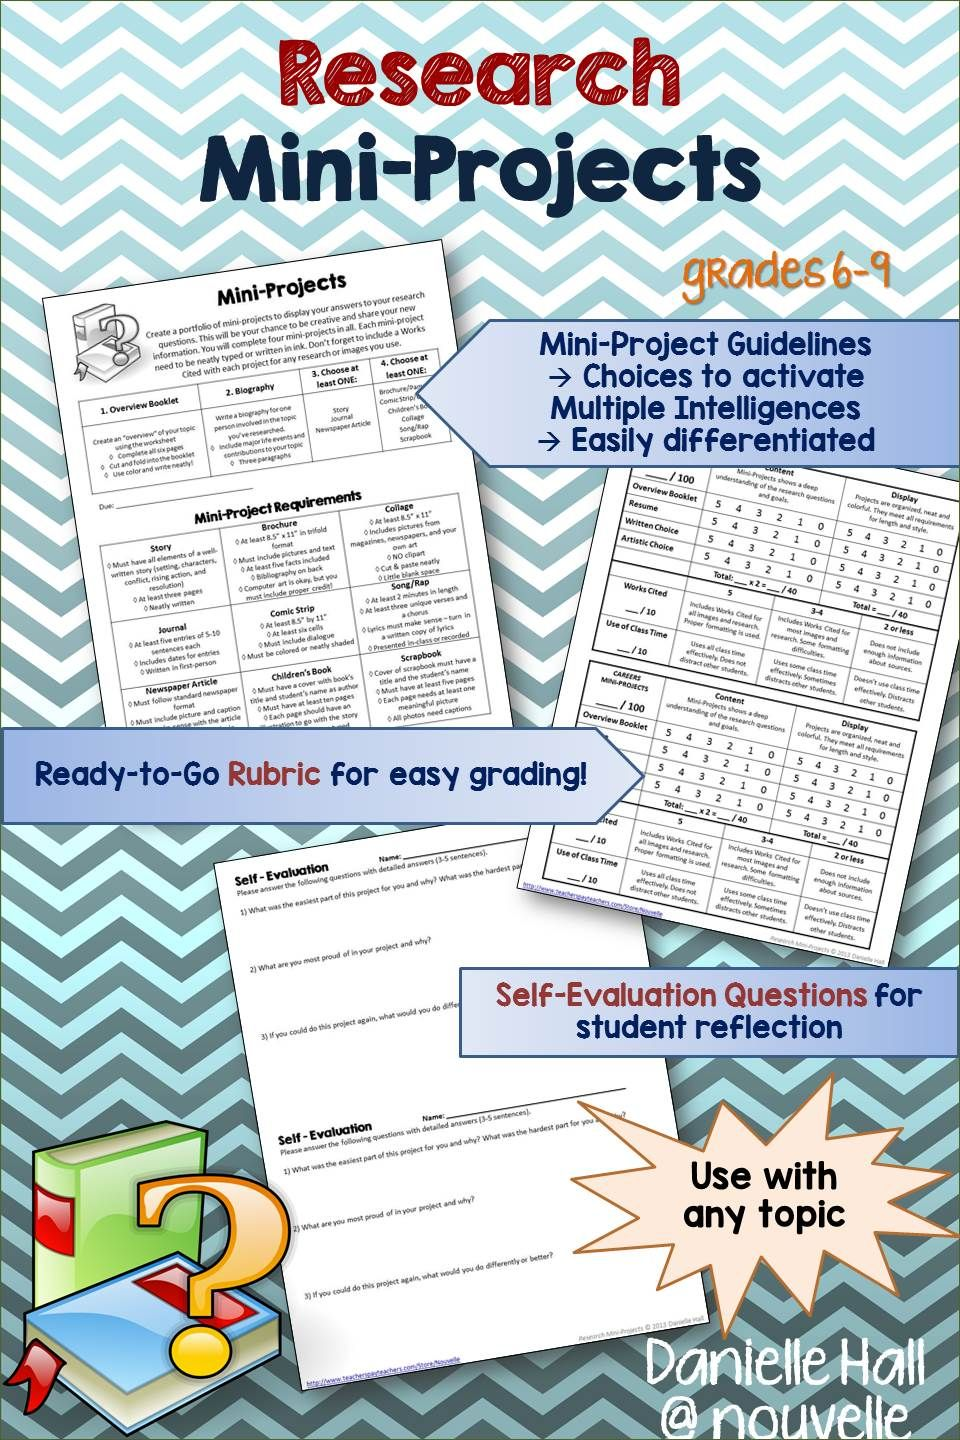 Students compile a portfolio of mini-projects to show understanding of a research topic. All students complete at least four mini-projects (two given, two choice), activating multiple intelligences and hitting different standards of Common Core. You can differentiate by changing length requirements or asking students to complete extra mini-projects. (6-9)